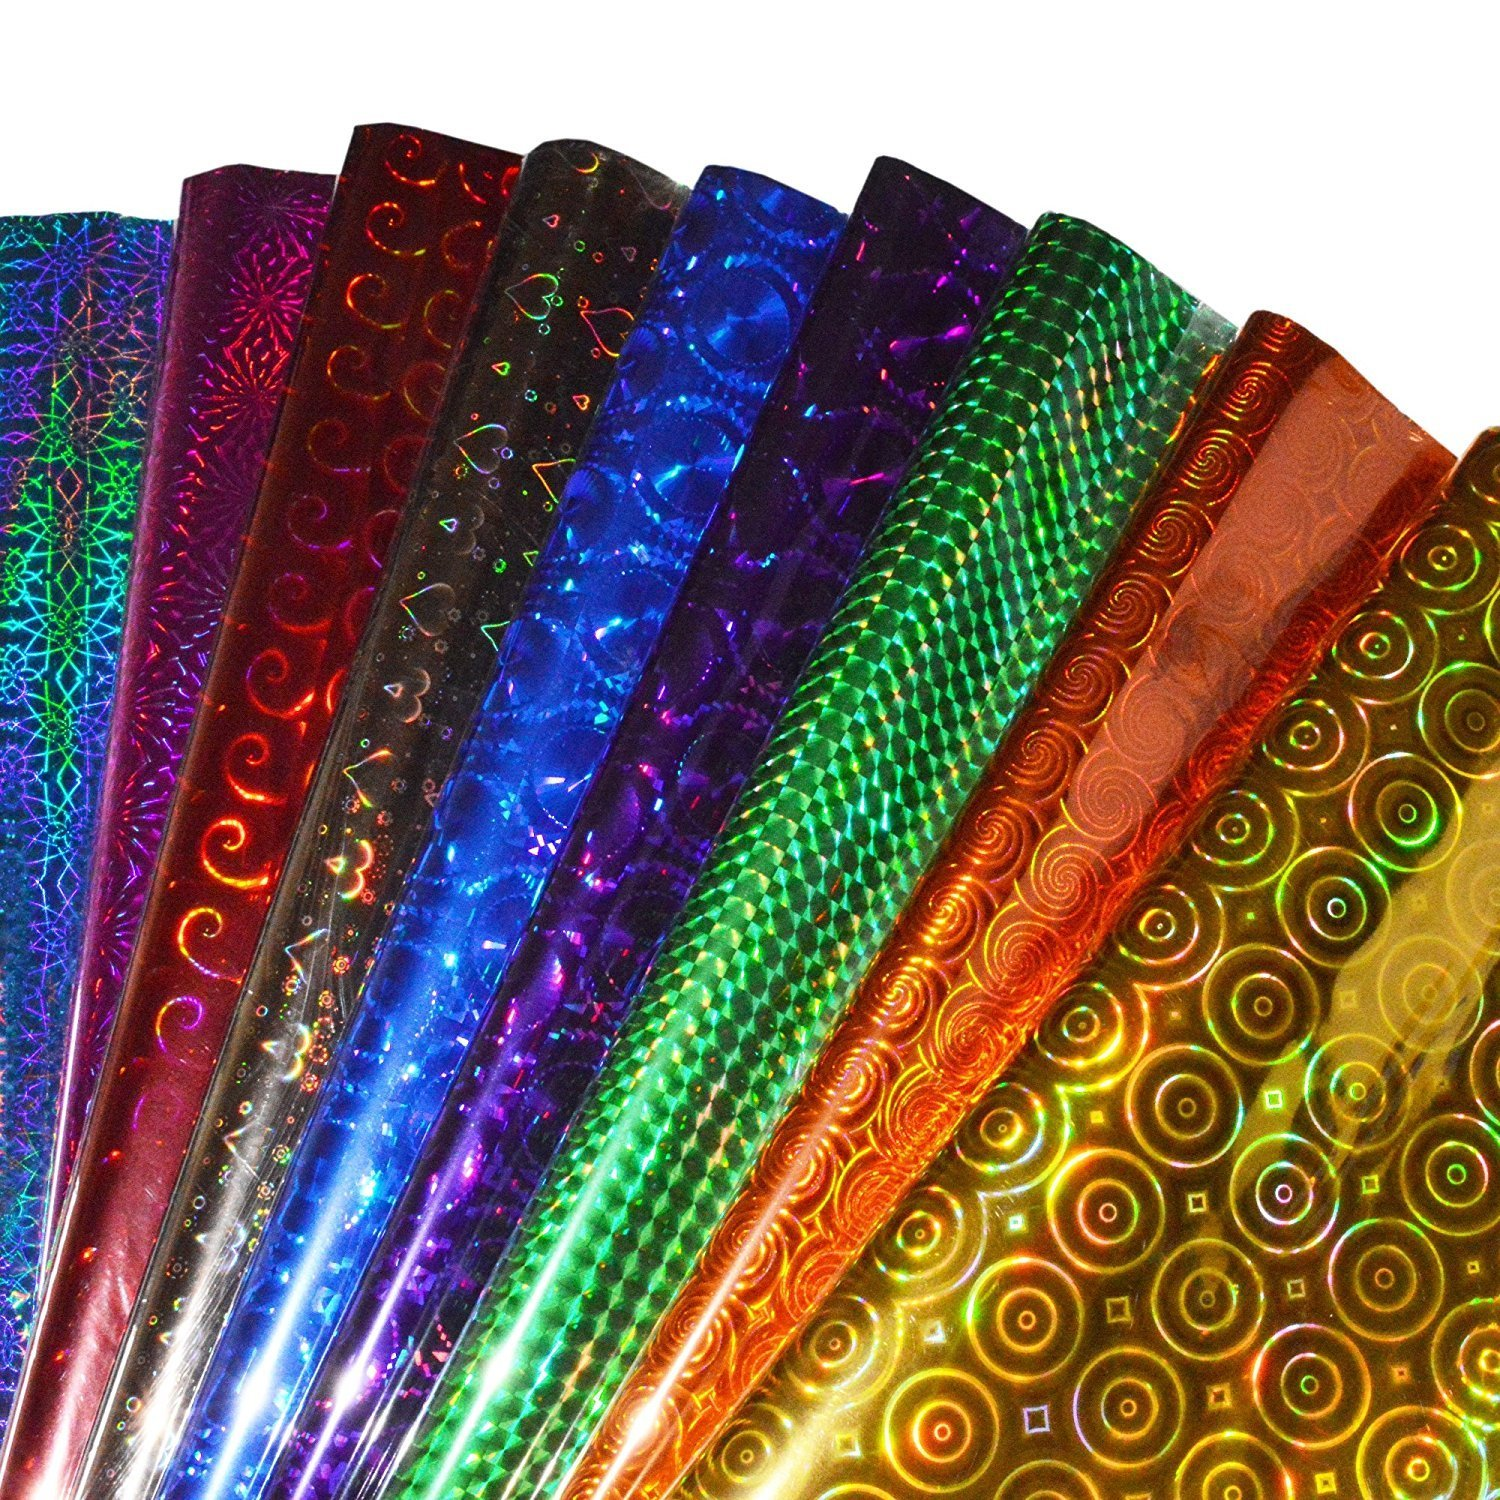 Lakeer Plastic Holographic Metallic Colour Paper Wrapping Sheets Especially for Gifts for Loved, 65cm X 45cm 50-Sheets (Multicolour) product image